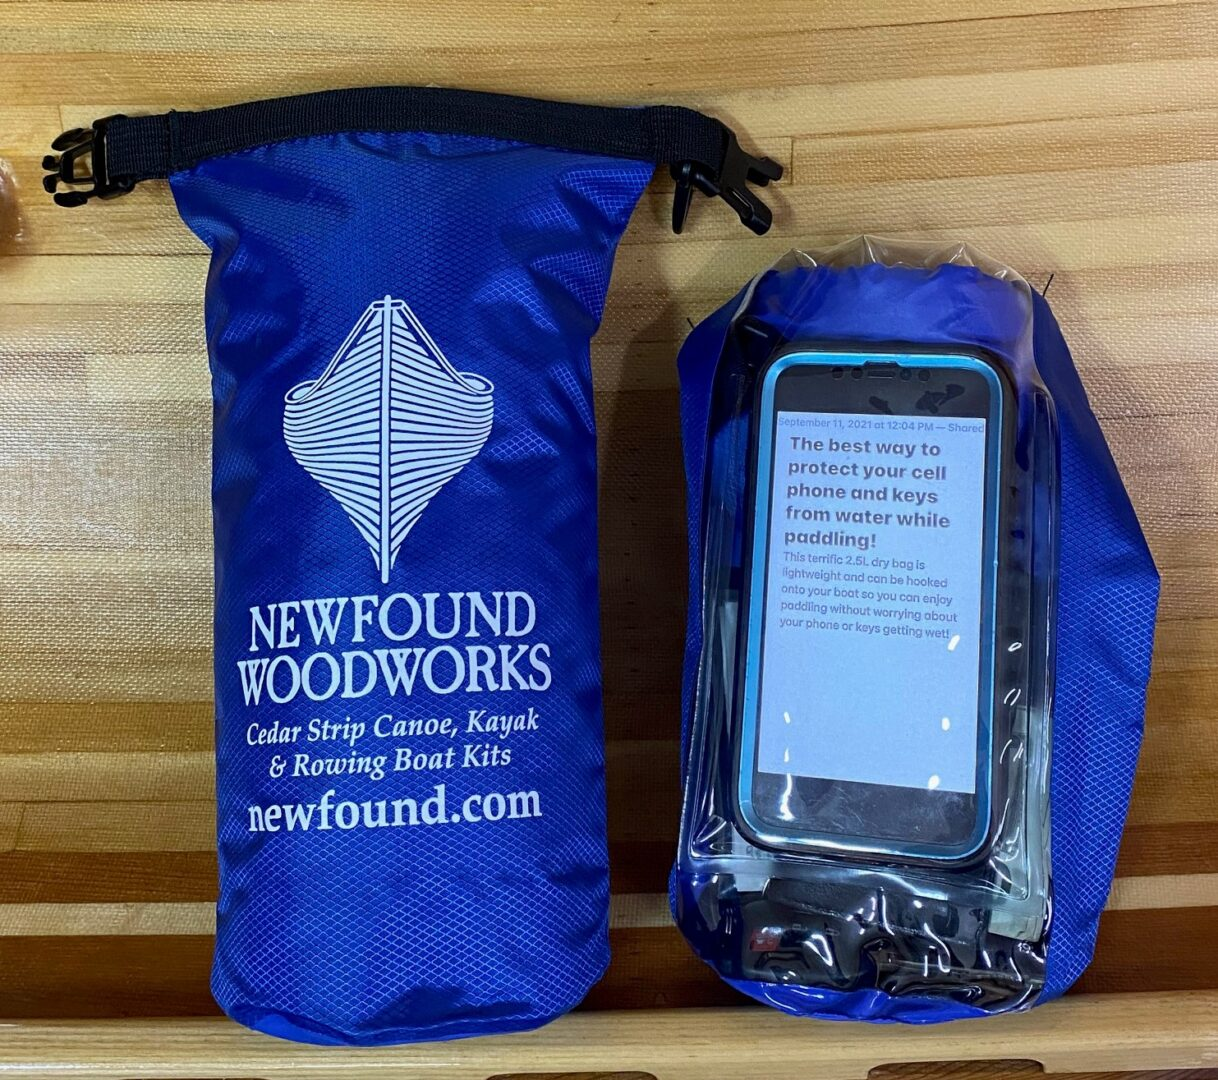 2.5 Dry Bag Newfound Woodworks